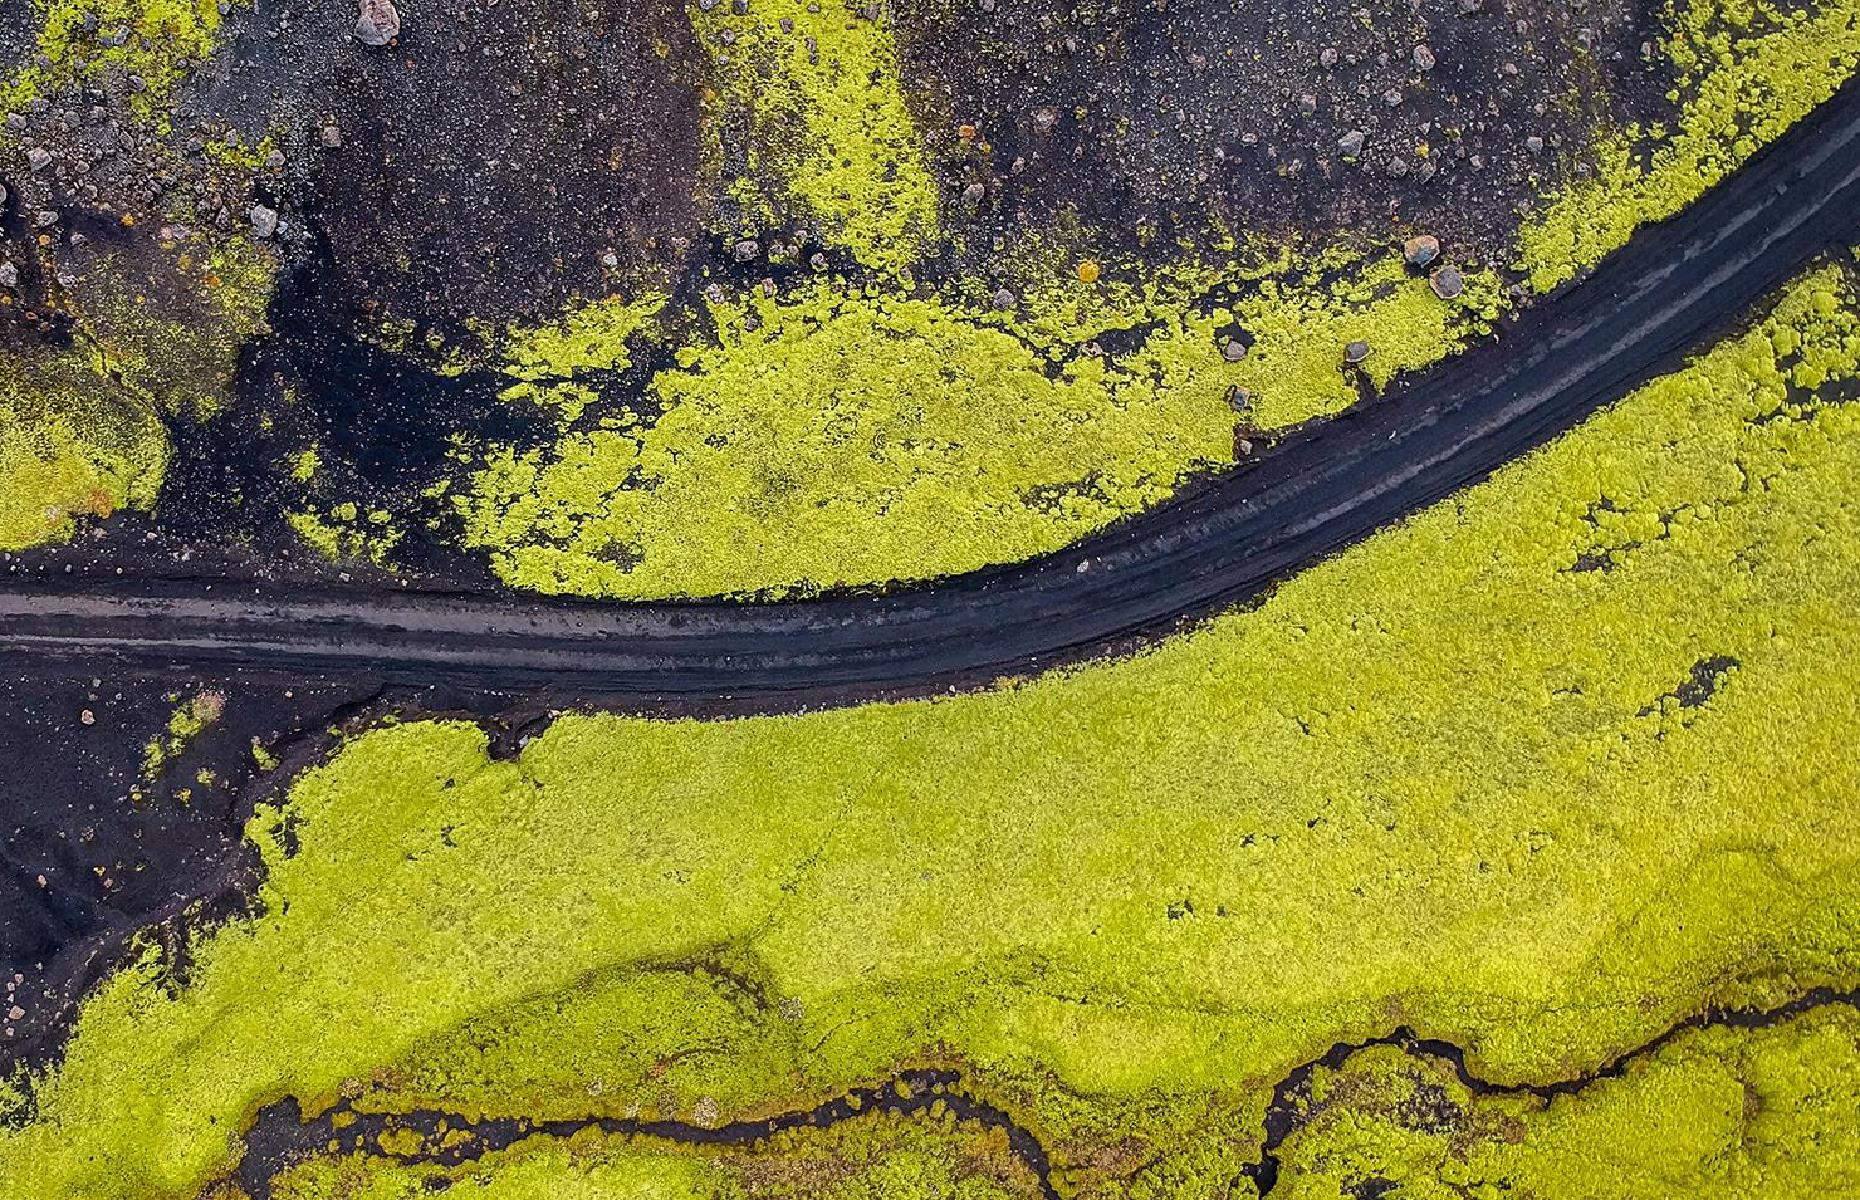 Slide 9 of 43: The Land of Ice and Fire is a stunner whichever way you look at it, but from above there's extra drama. This highland road slices through Iceland's Interior, not far from the volcanic fissure of Laki. A bird's-eye view shows how the lime-green moss contrasts with the ink black of the lava rocks.